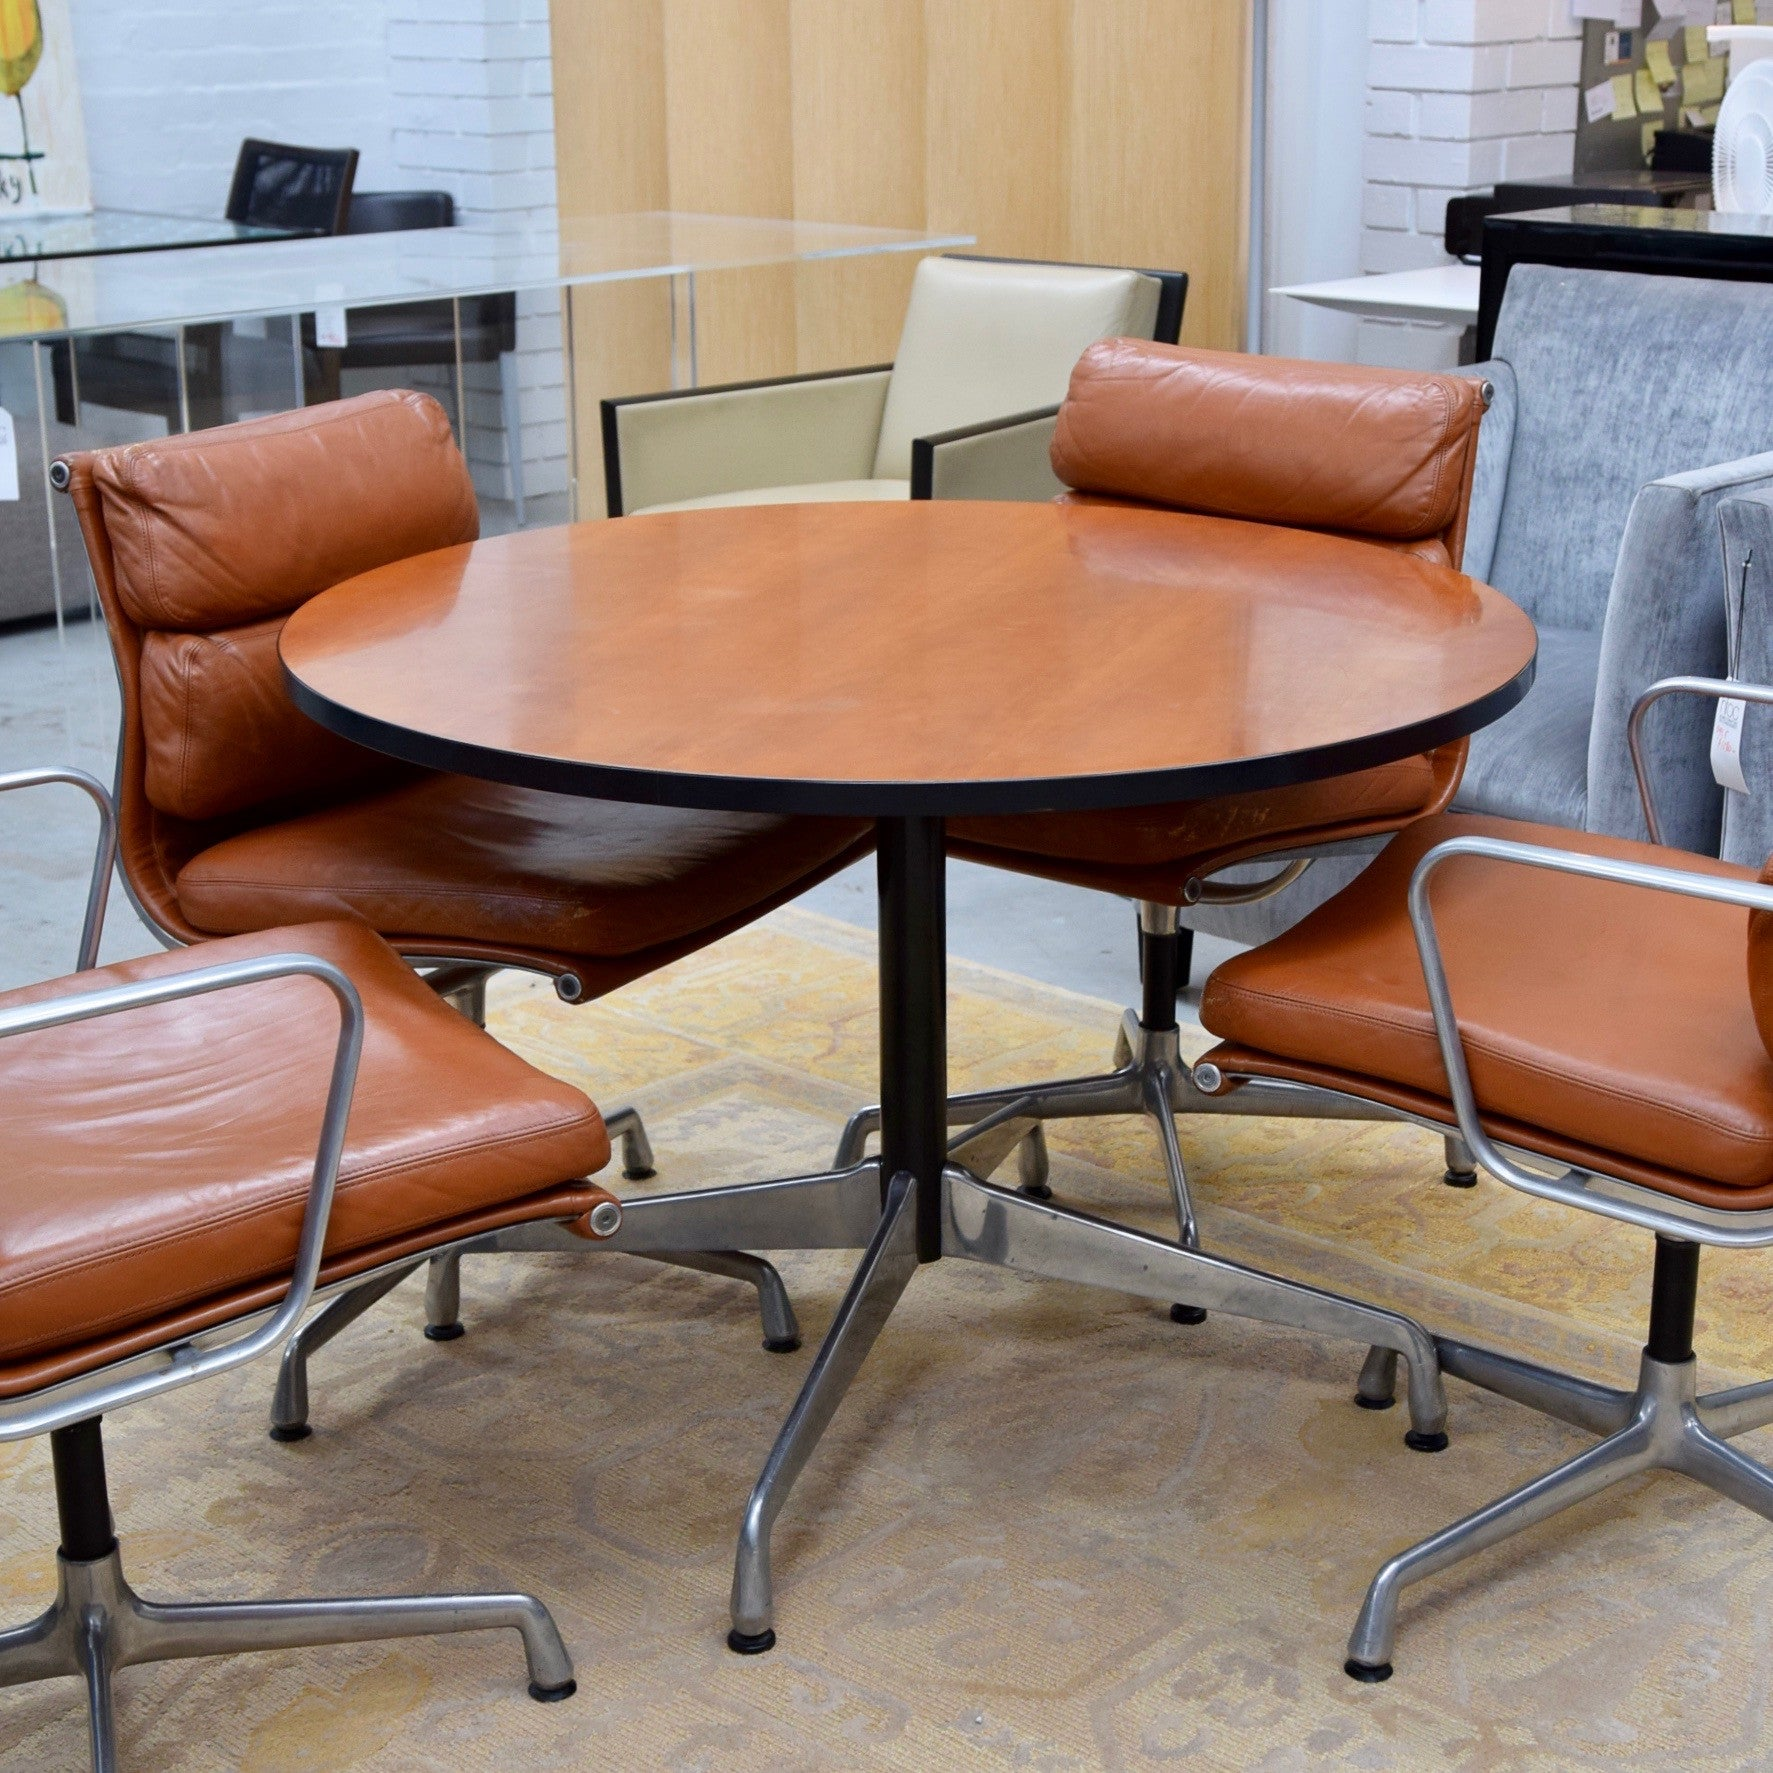 Vintage Eames Meeting Table with Walnut Top by Herman Miller